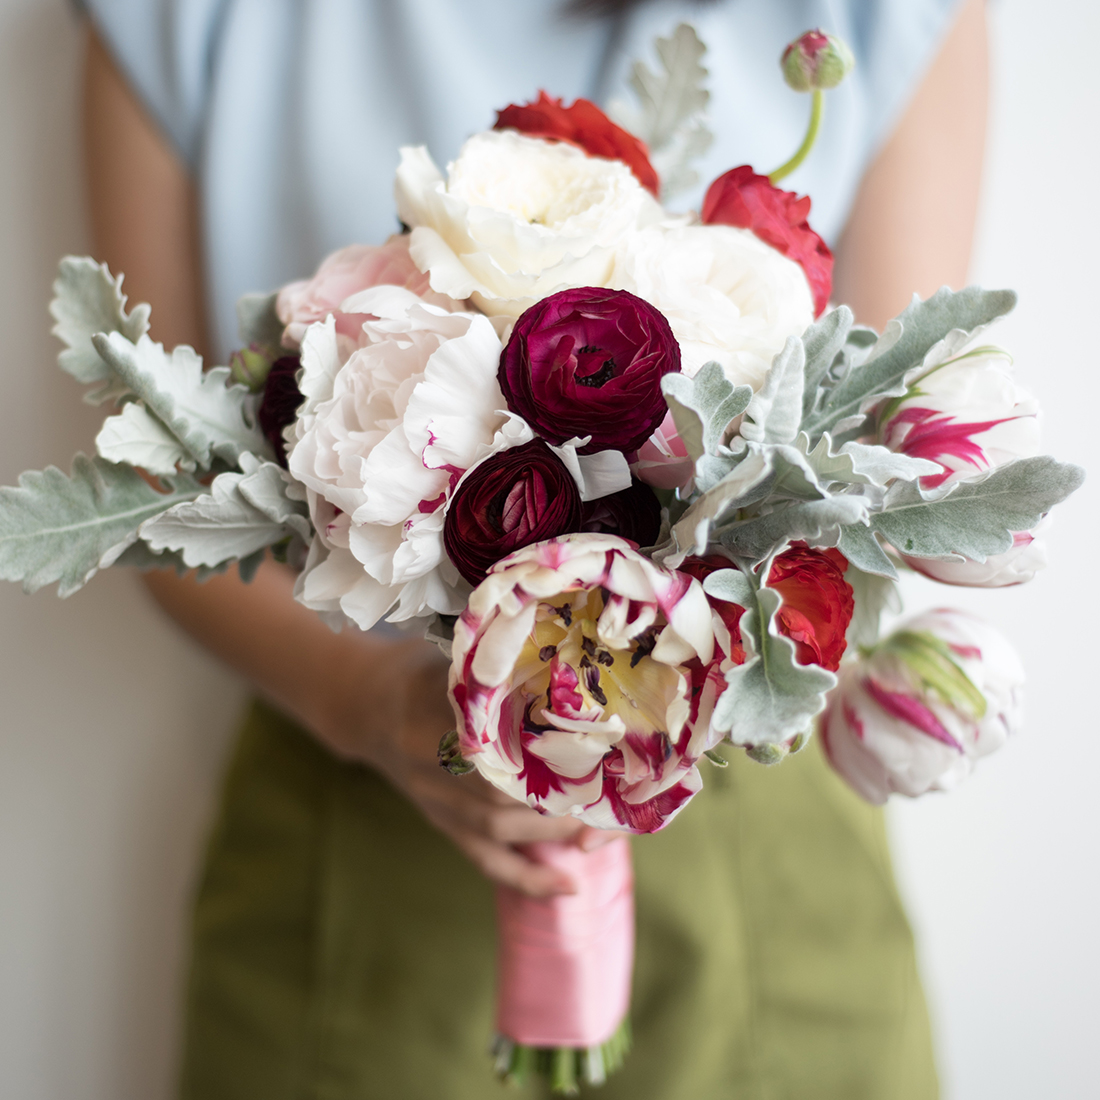 DIY wedding decor: Five tips for arranging your own bouquets and ...